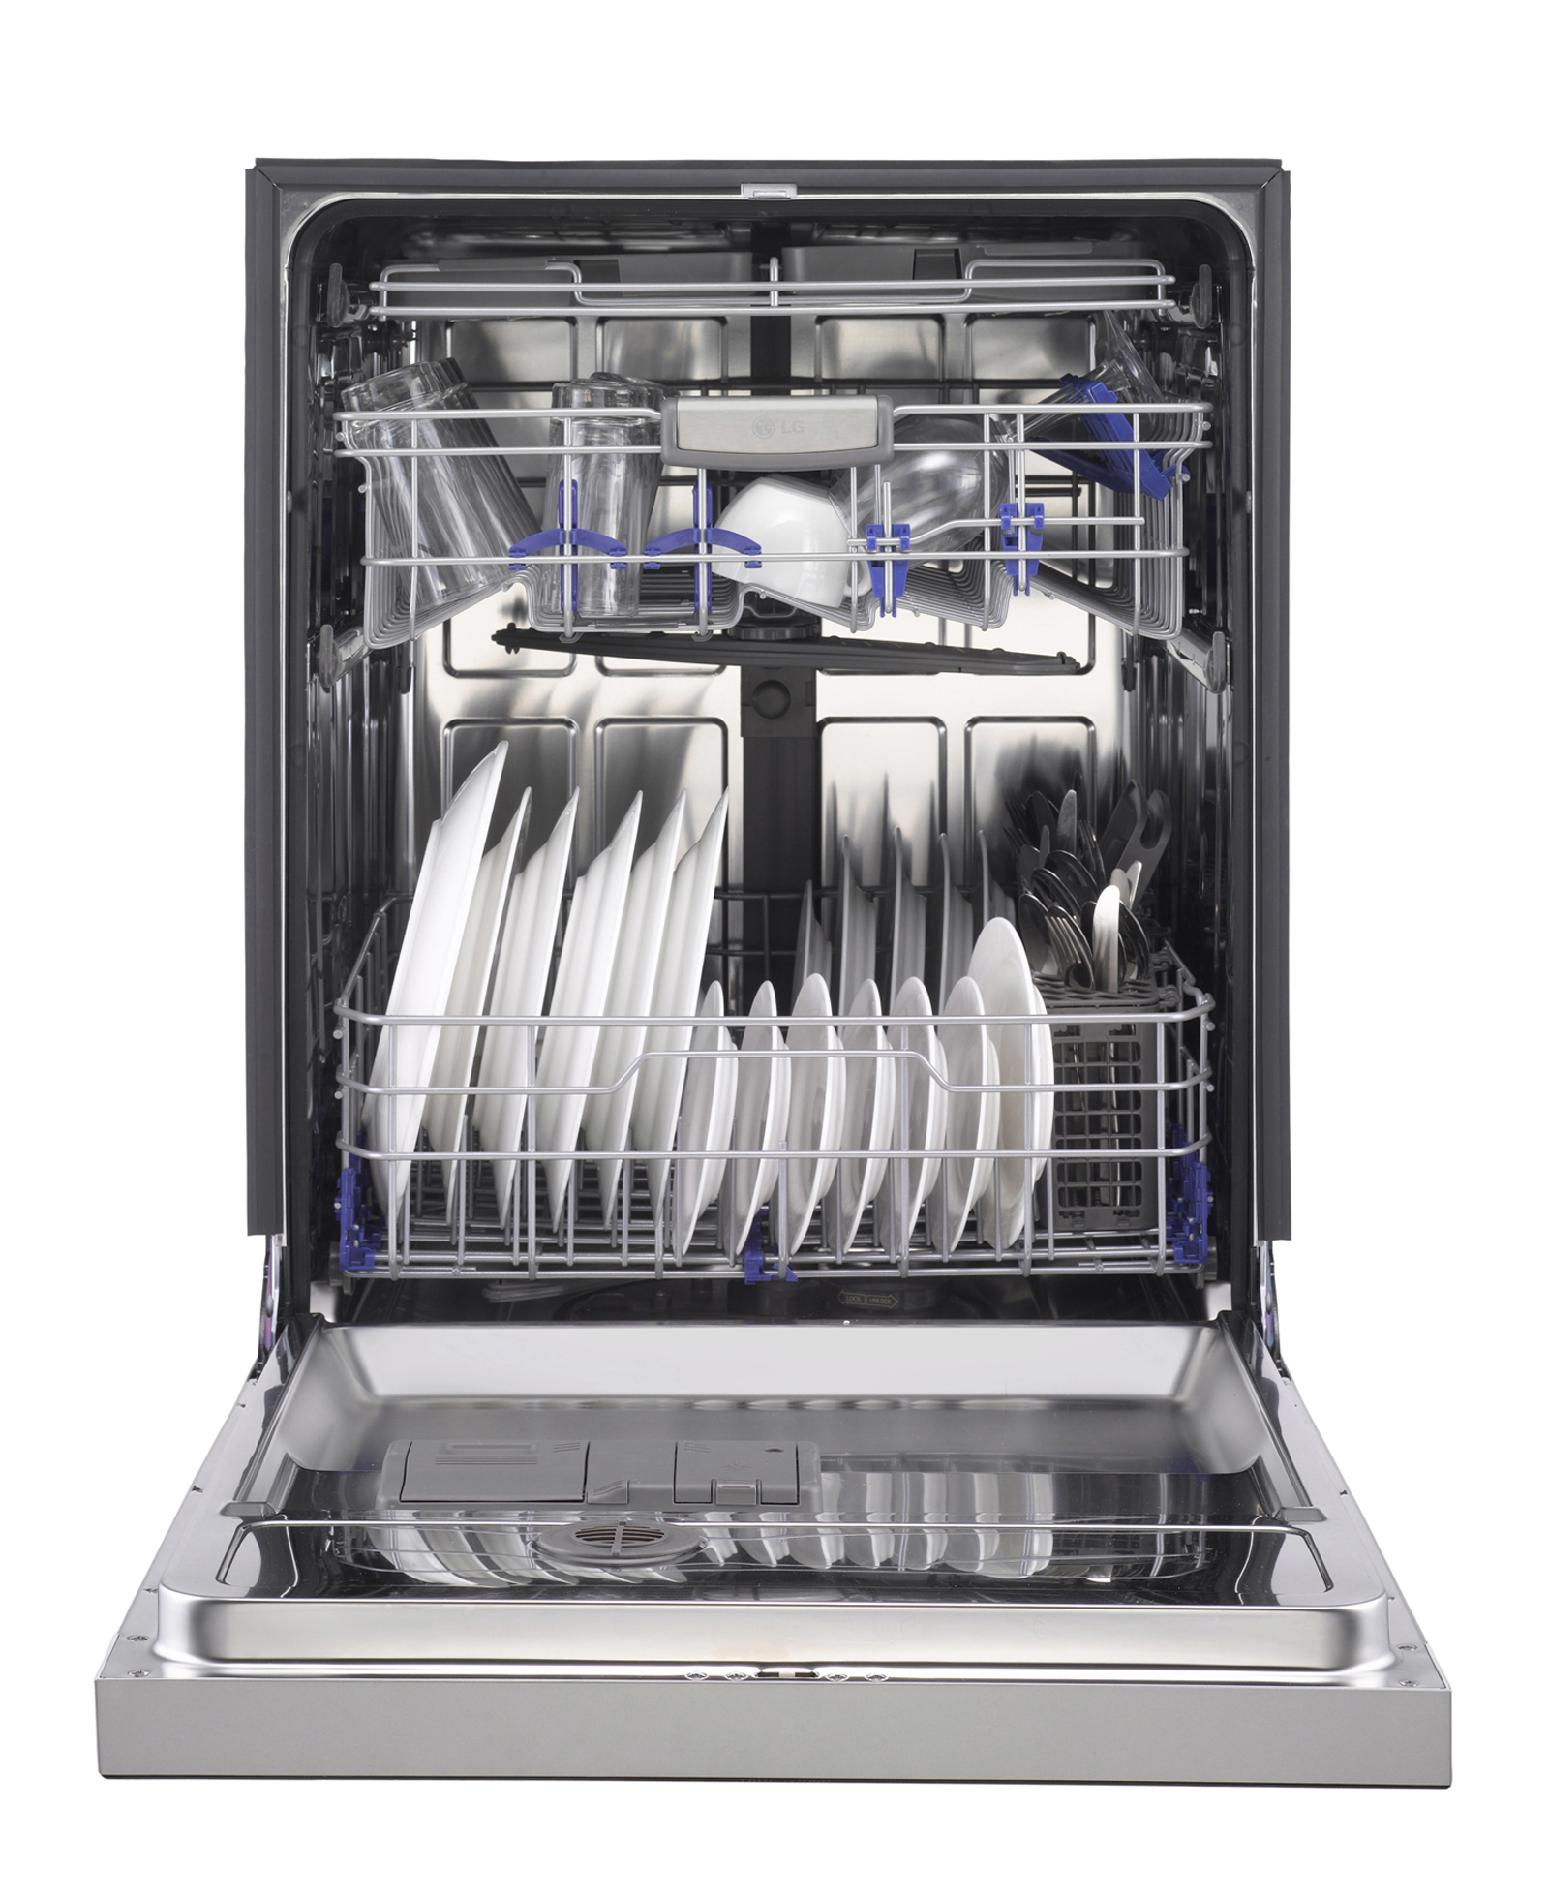 """LG 24"""" Built-In Dishwasher w/ SenseClean™ - Stainless Steel"""